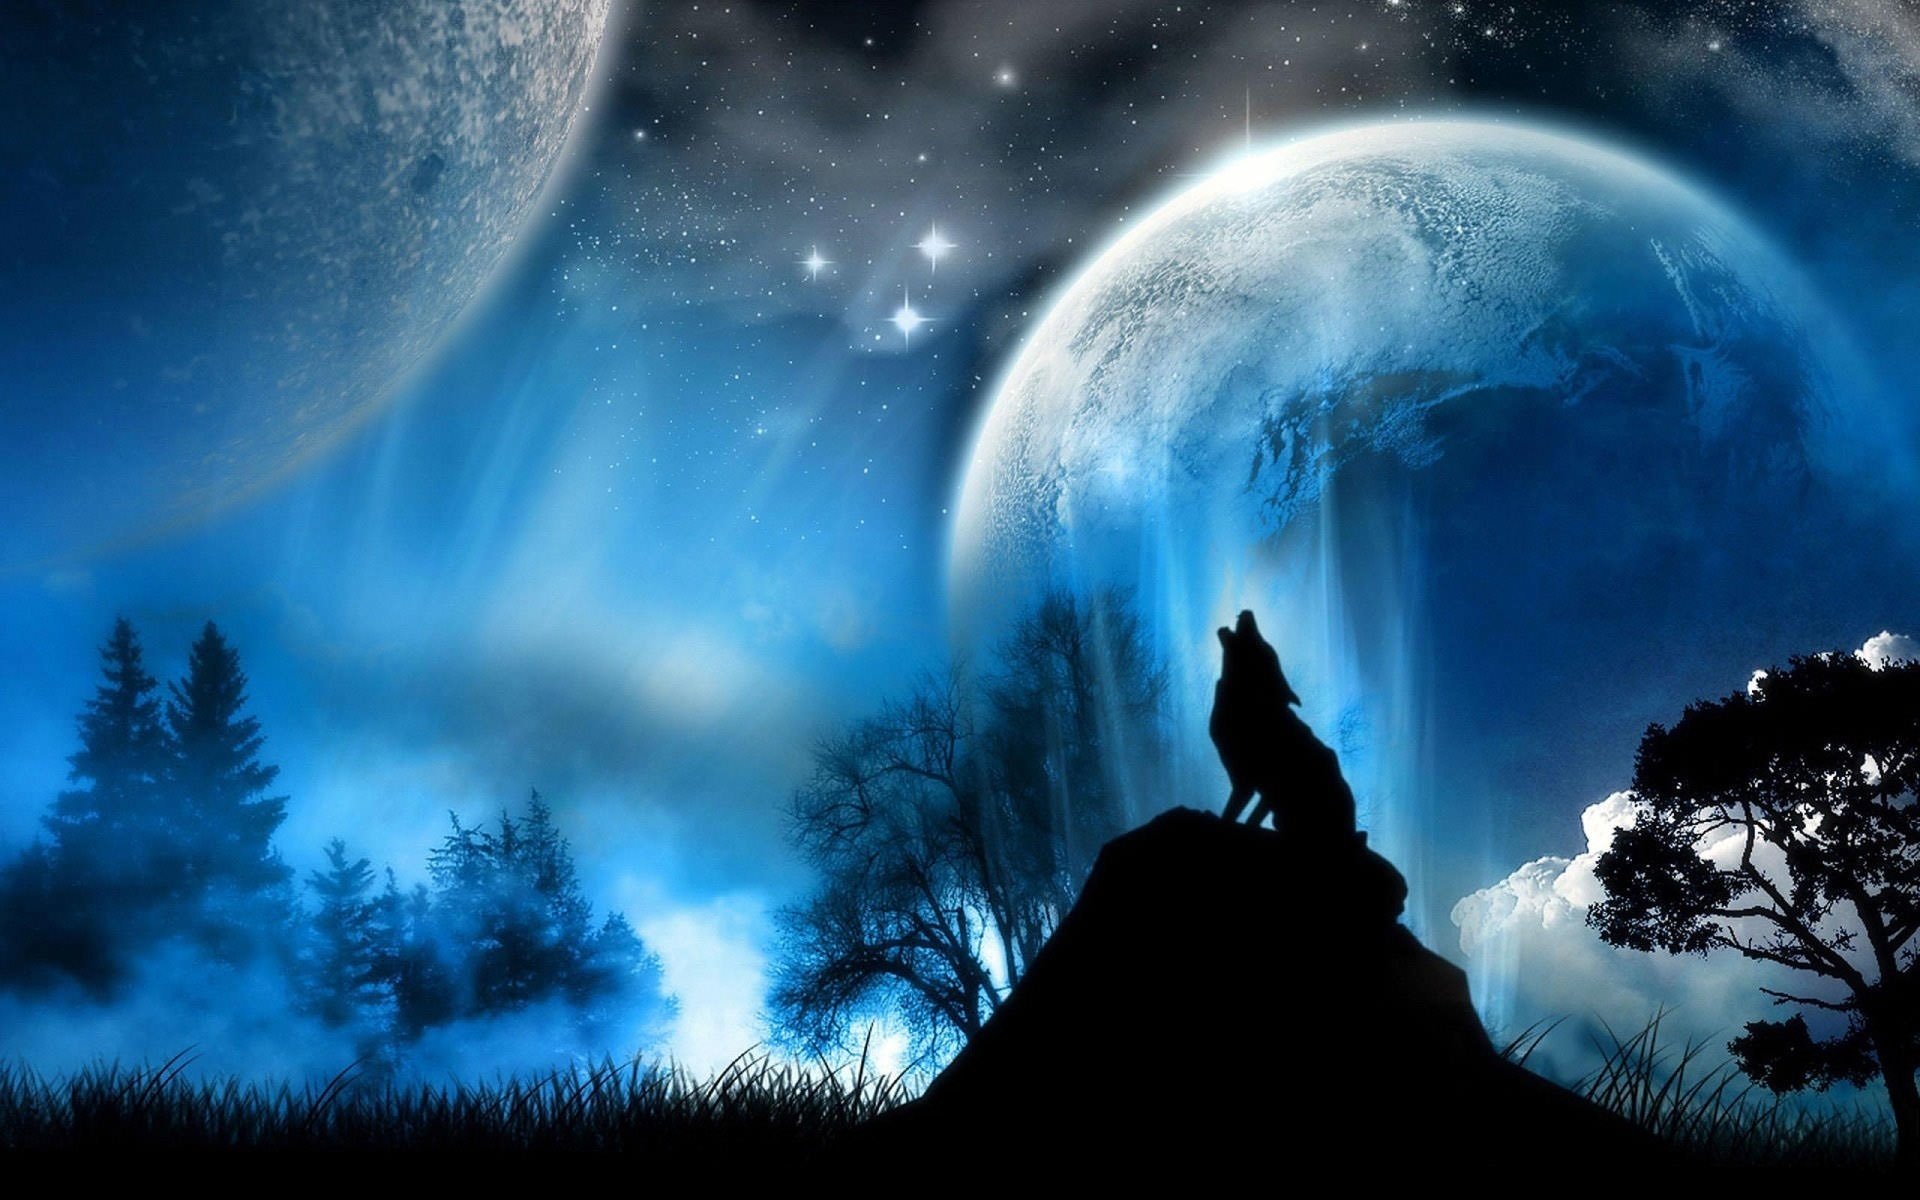 20 Best Moon Desktop Wallpapers|FreeCreatives